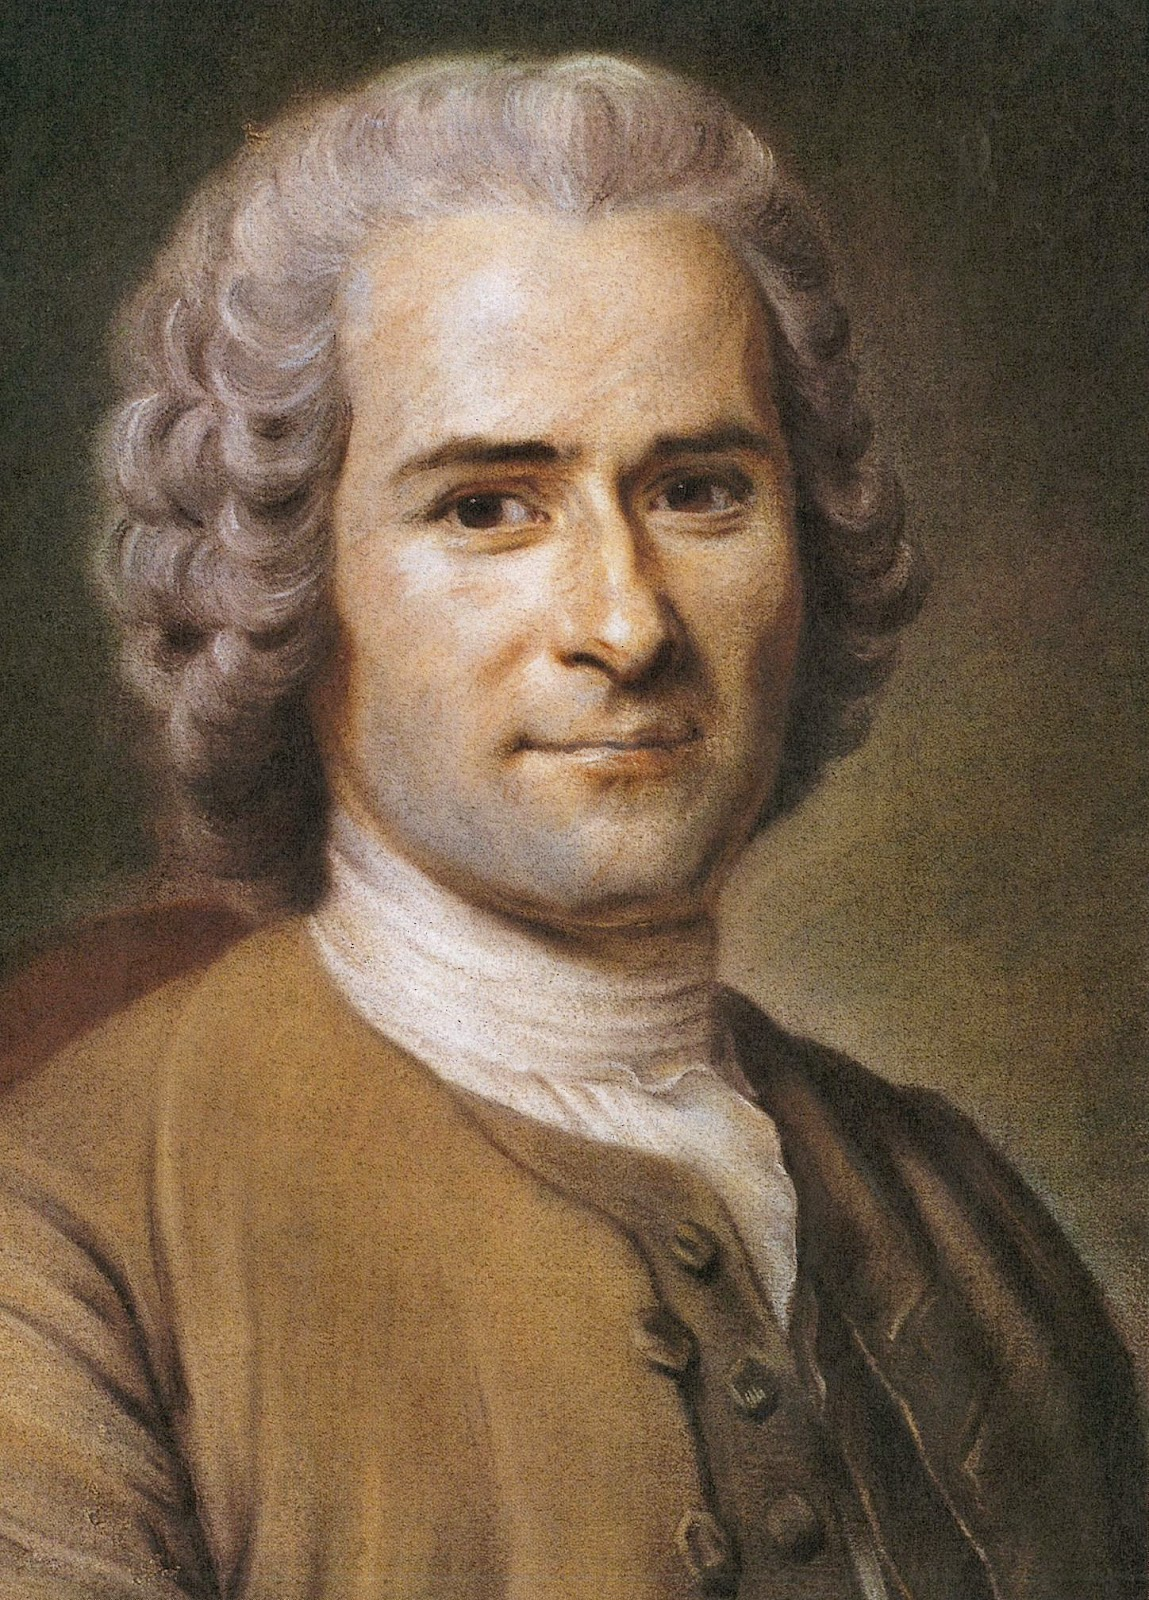 Top 14 Greatest Philosophers And Their Books - Jean Jacques Rousseau - Social Contract